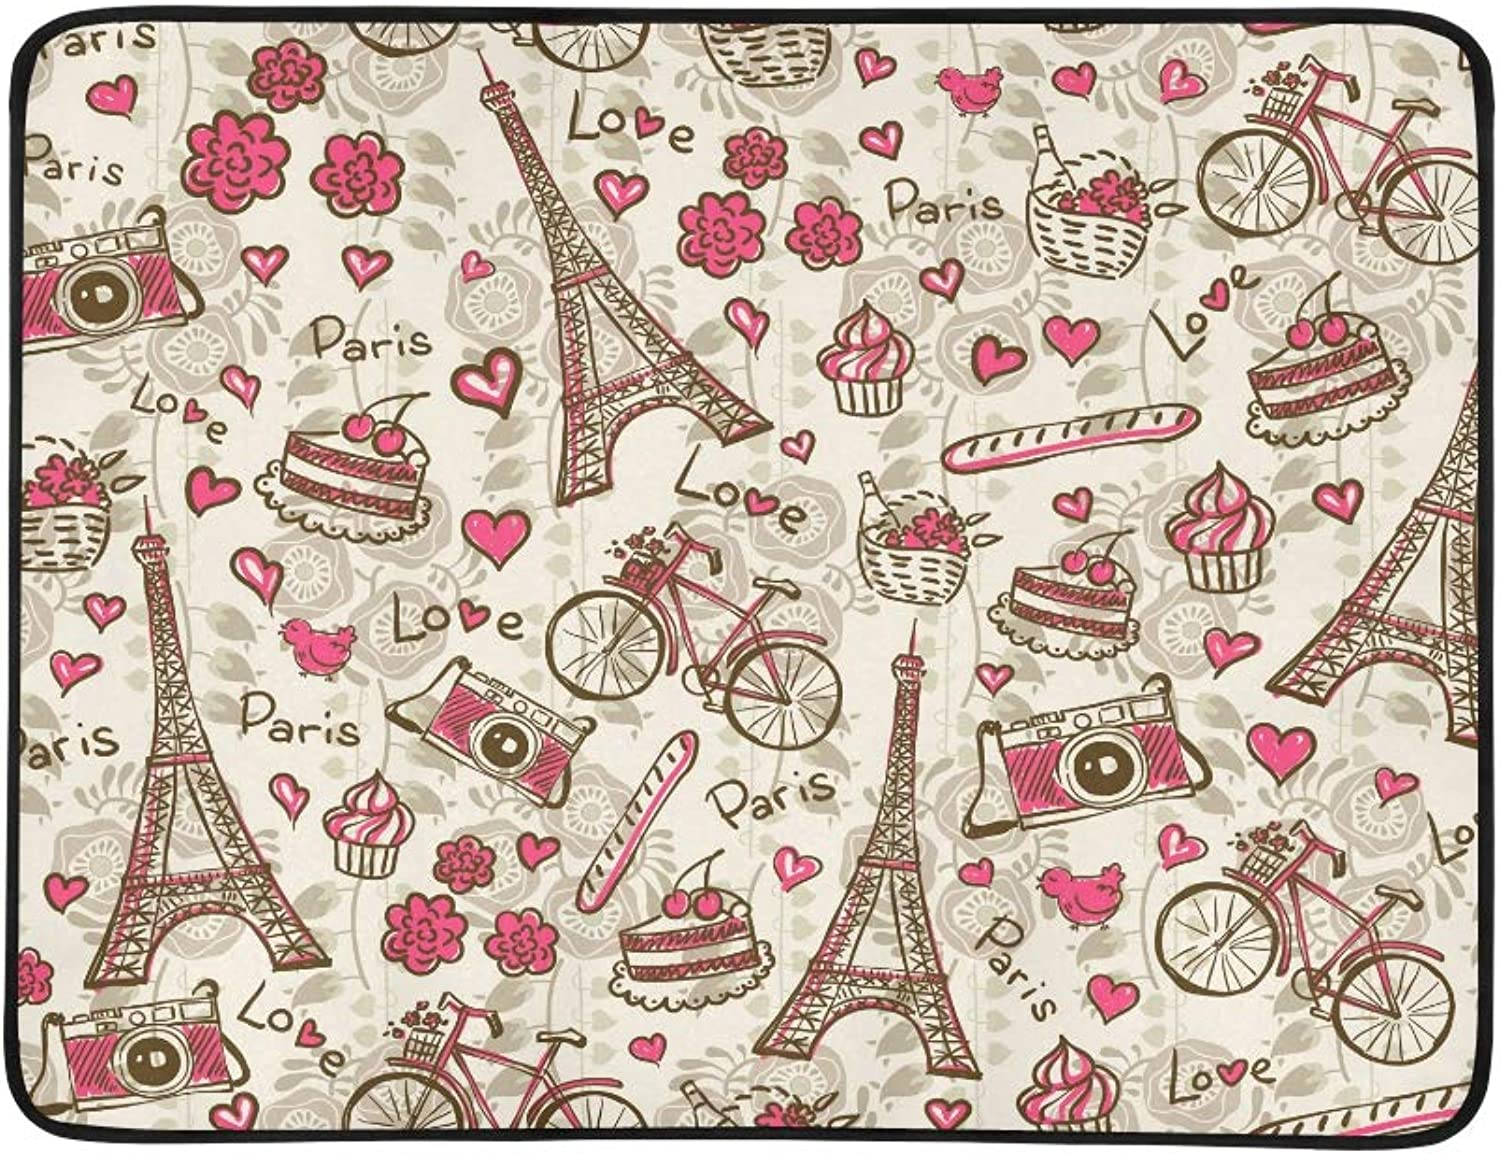 Vintage Paris Eiffel Tower and Hearts Pattern Portable and Foldable Blanket Mat 60x78 Inch Handy Mat for Camping Picnic Beach Indoor Outdoor Travel